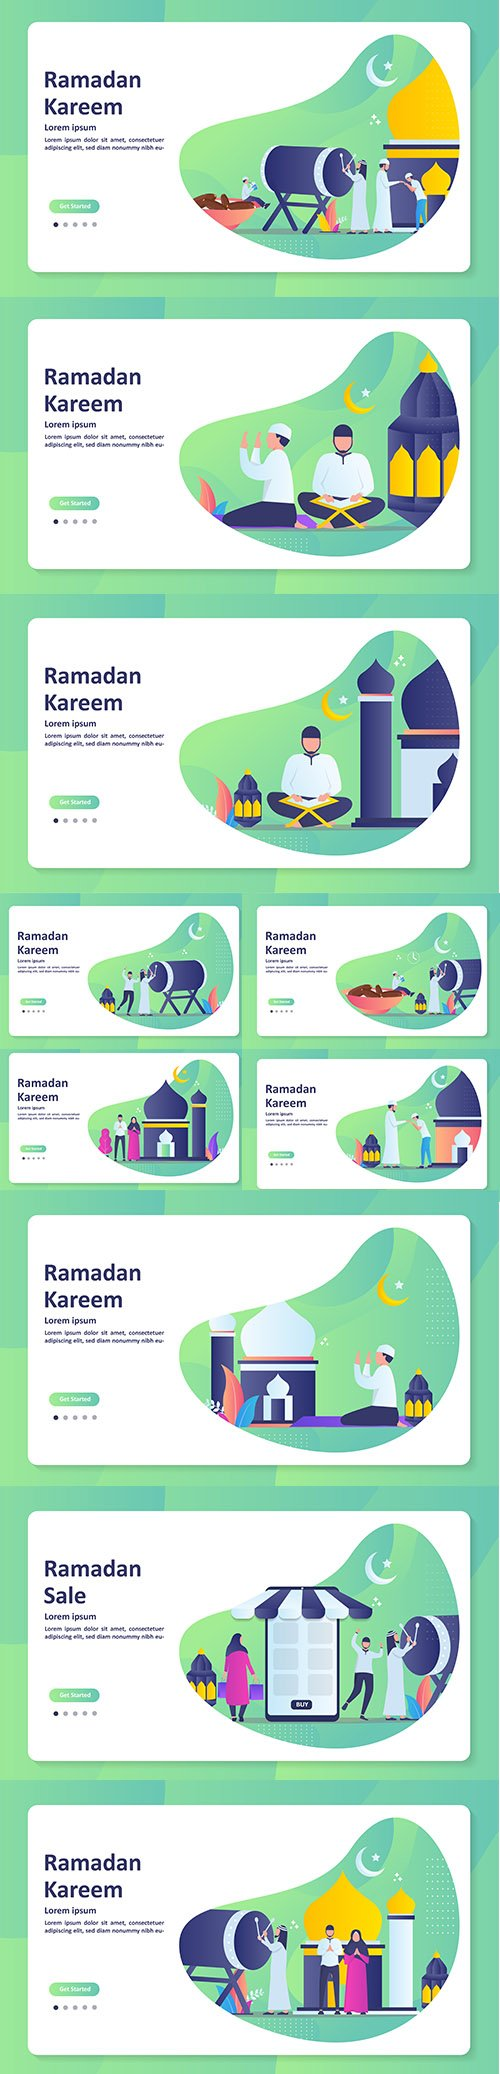 Happy Eid Mubarak and Ramadan Kareem Banner Set